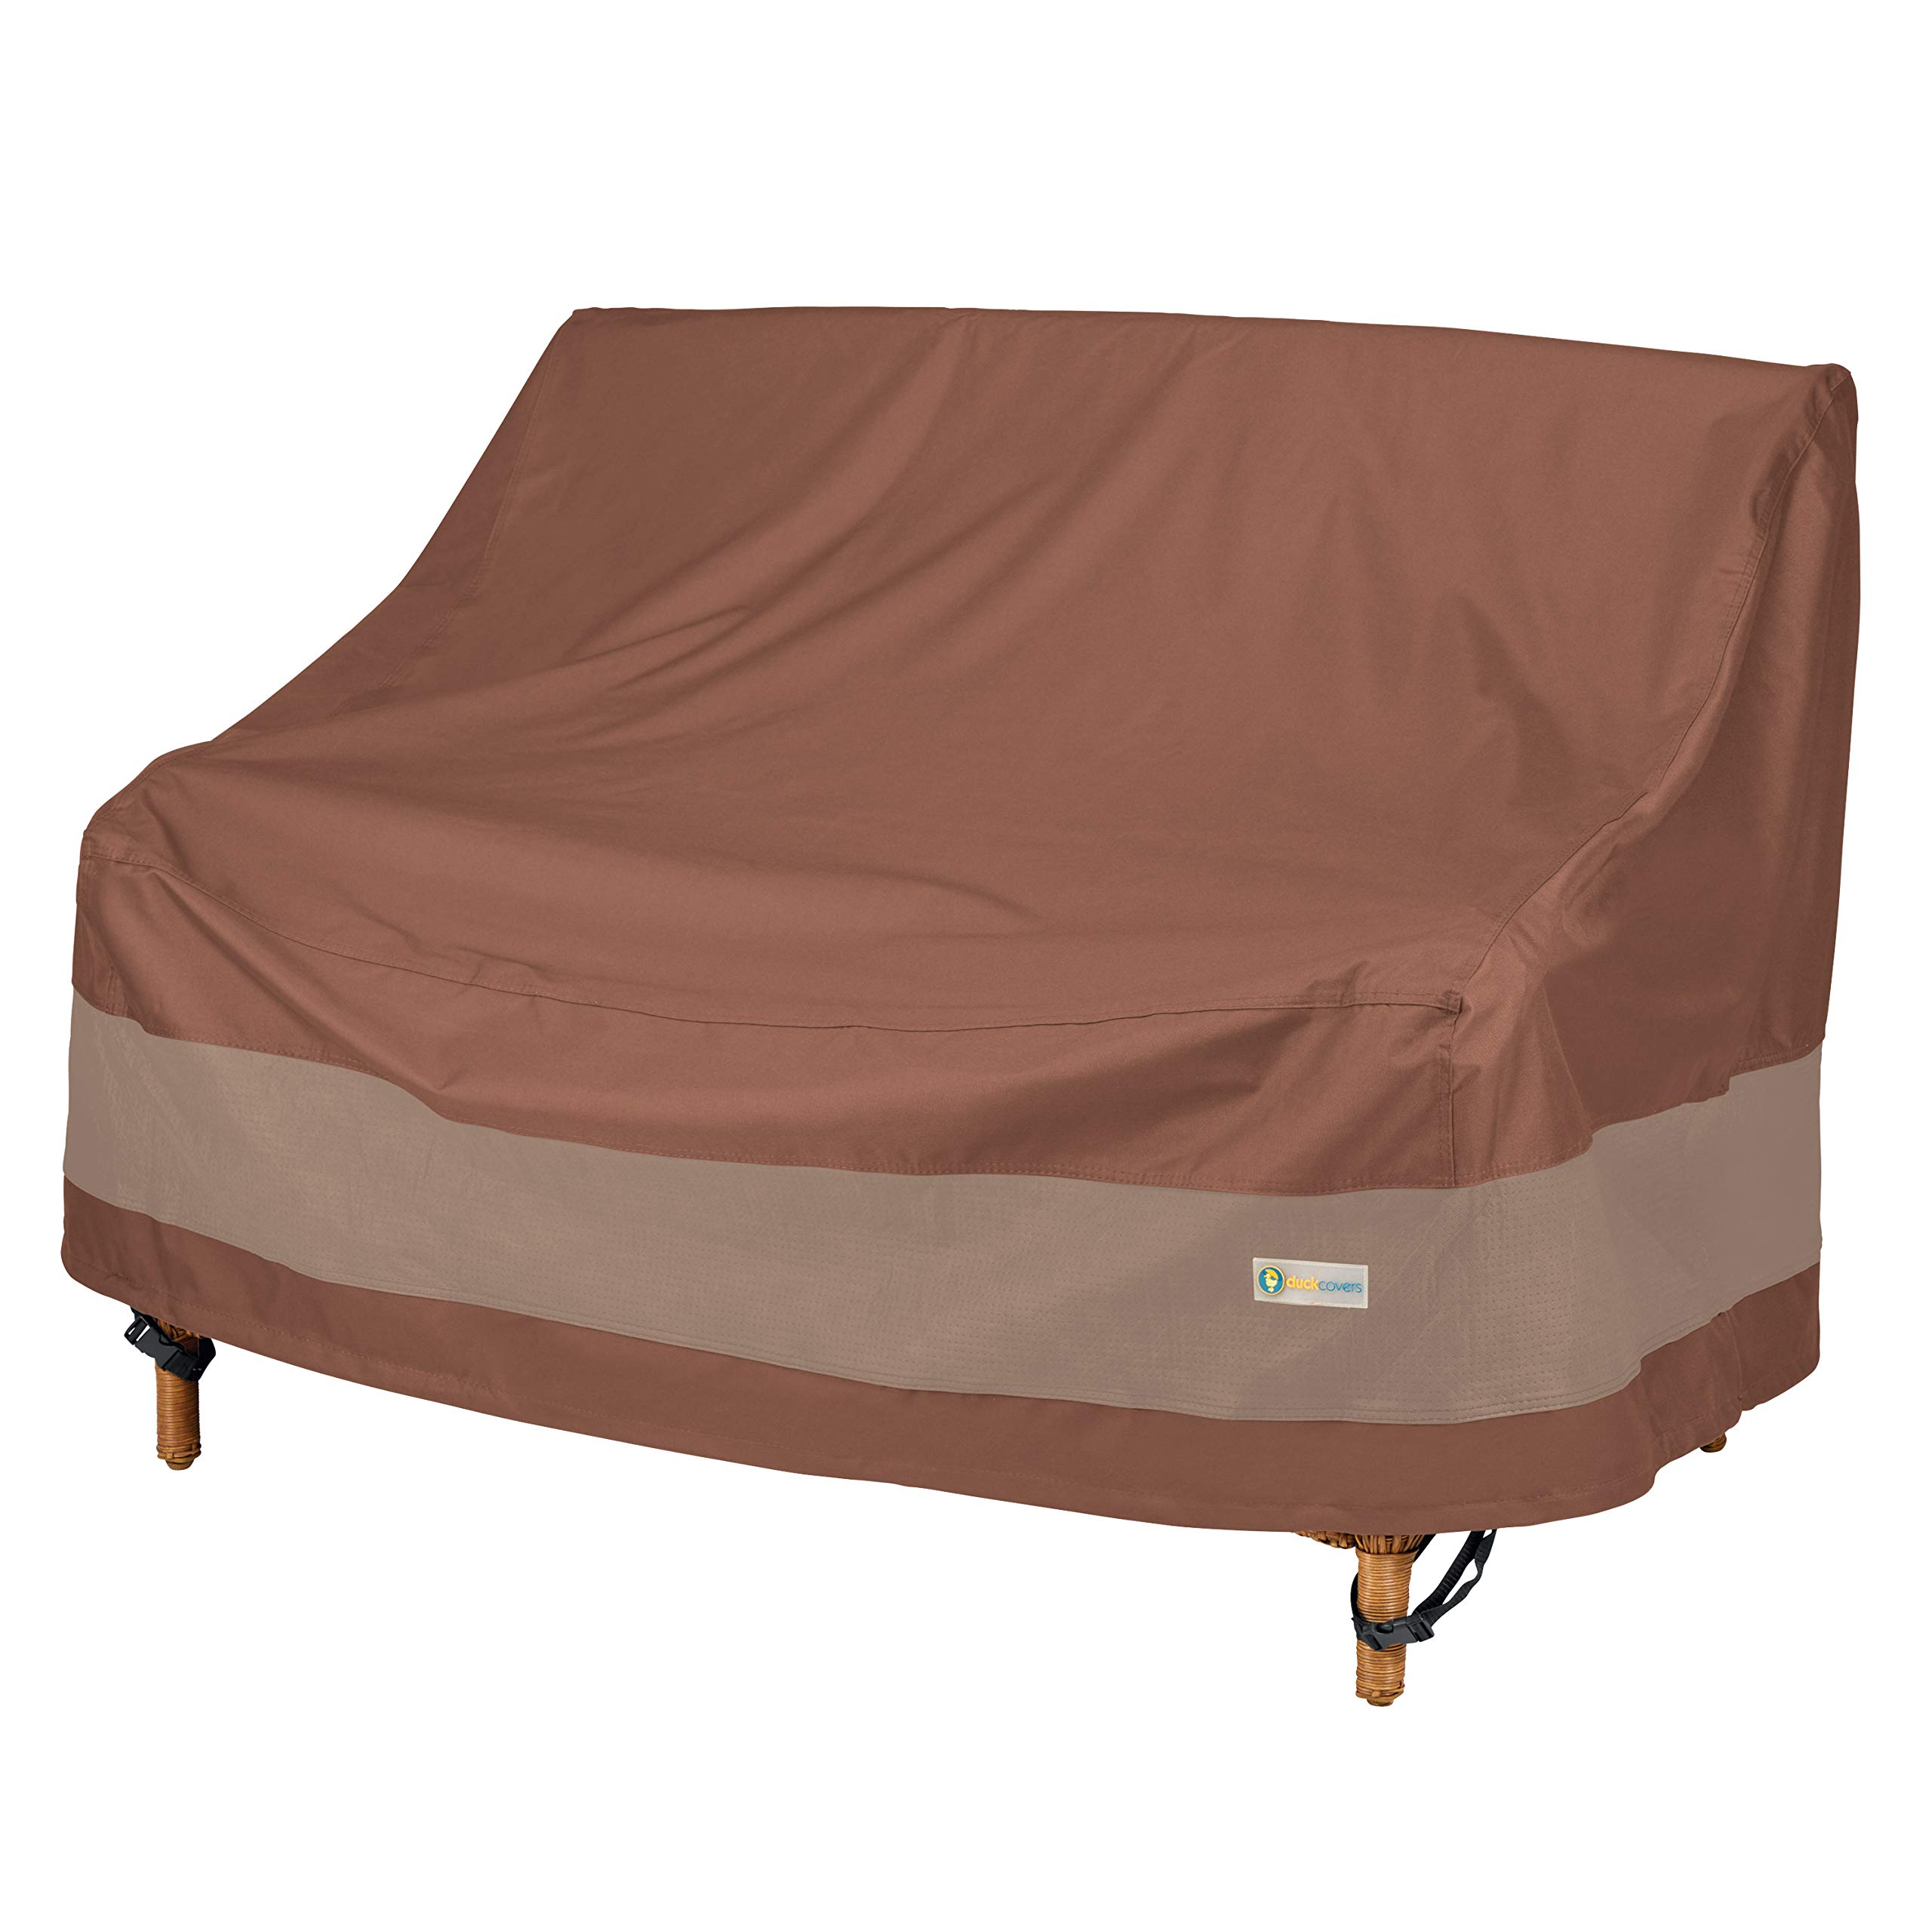 Duck Covers Ultimate Loveseat Cover 60'' Wide by Duck Covers